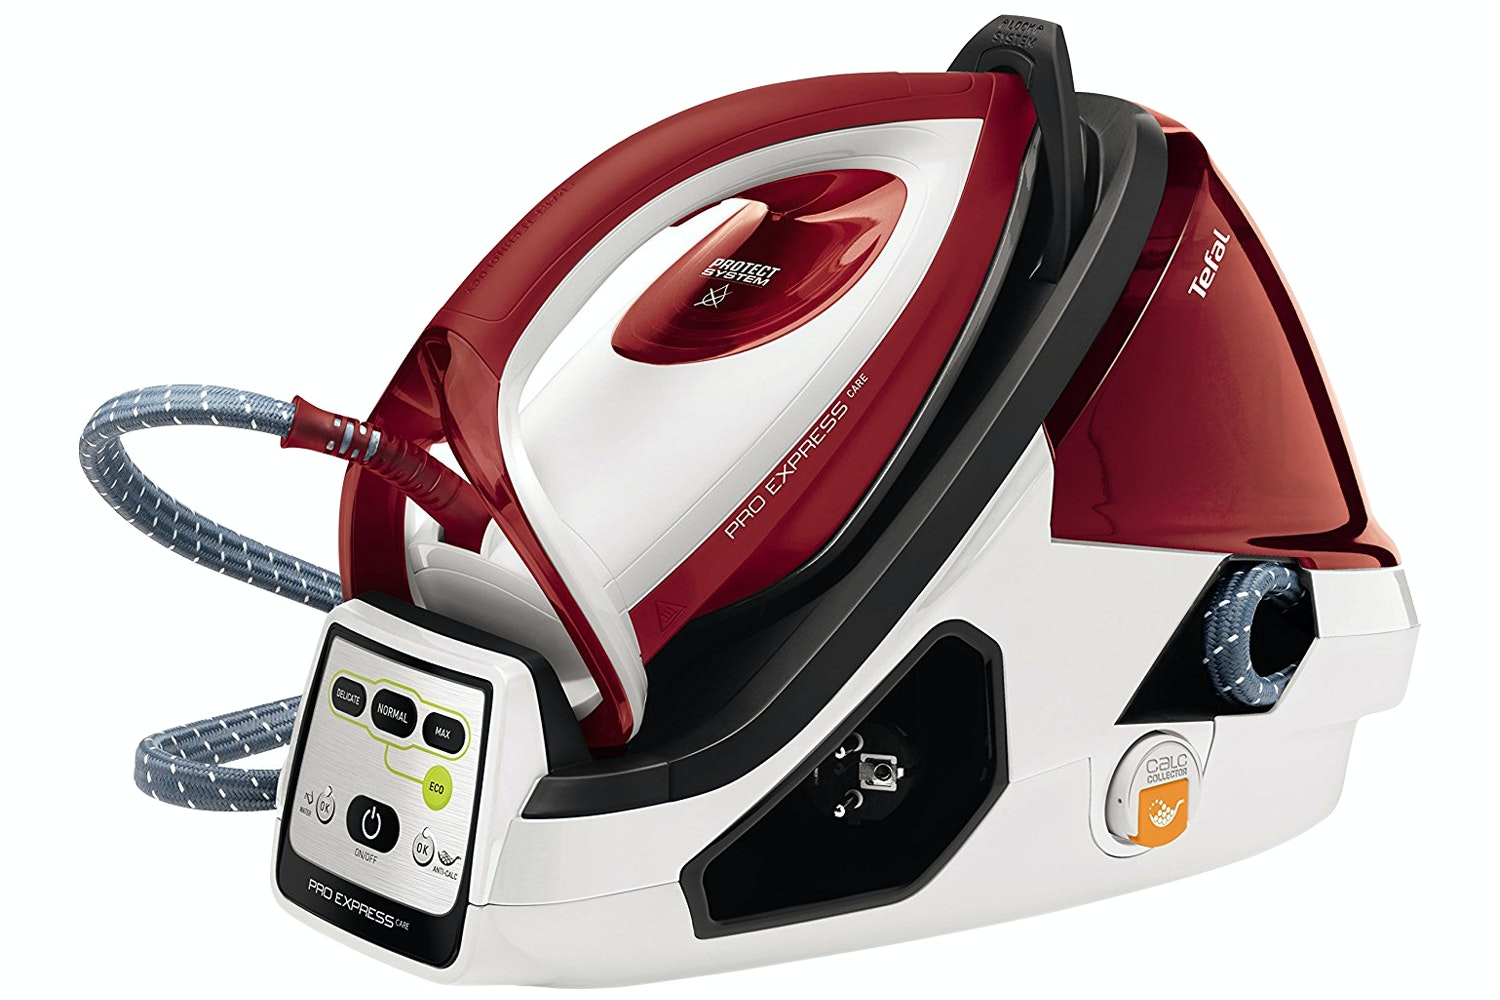 Tefal Pro High Pressure Steam Generator Iron | GV9061G0